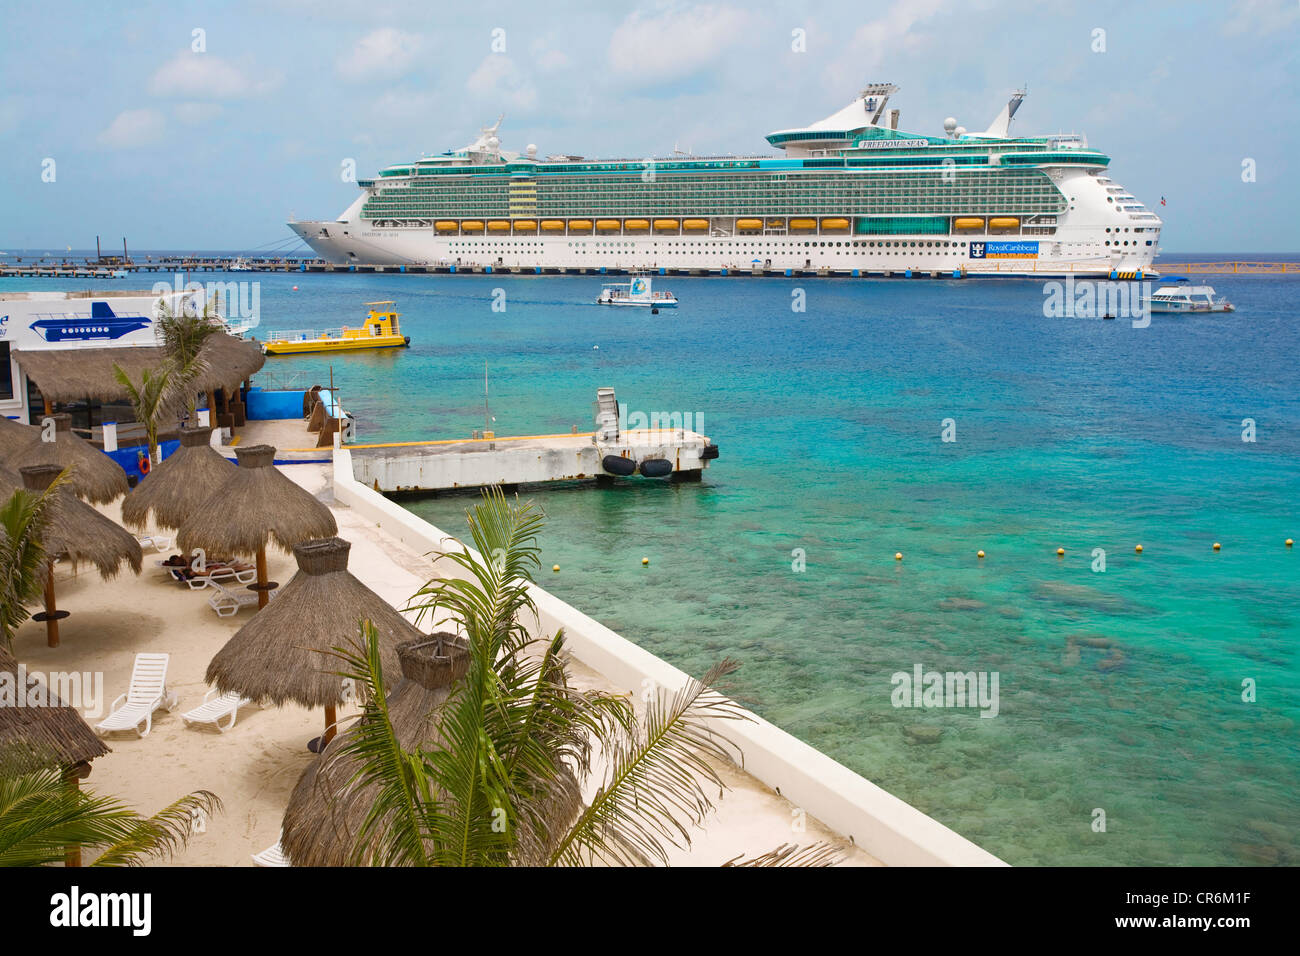 Freedom of the Seas, a cruise ship, small beach, San Miguel, Cozumel, Mexico, Caribbean - Stock Image